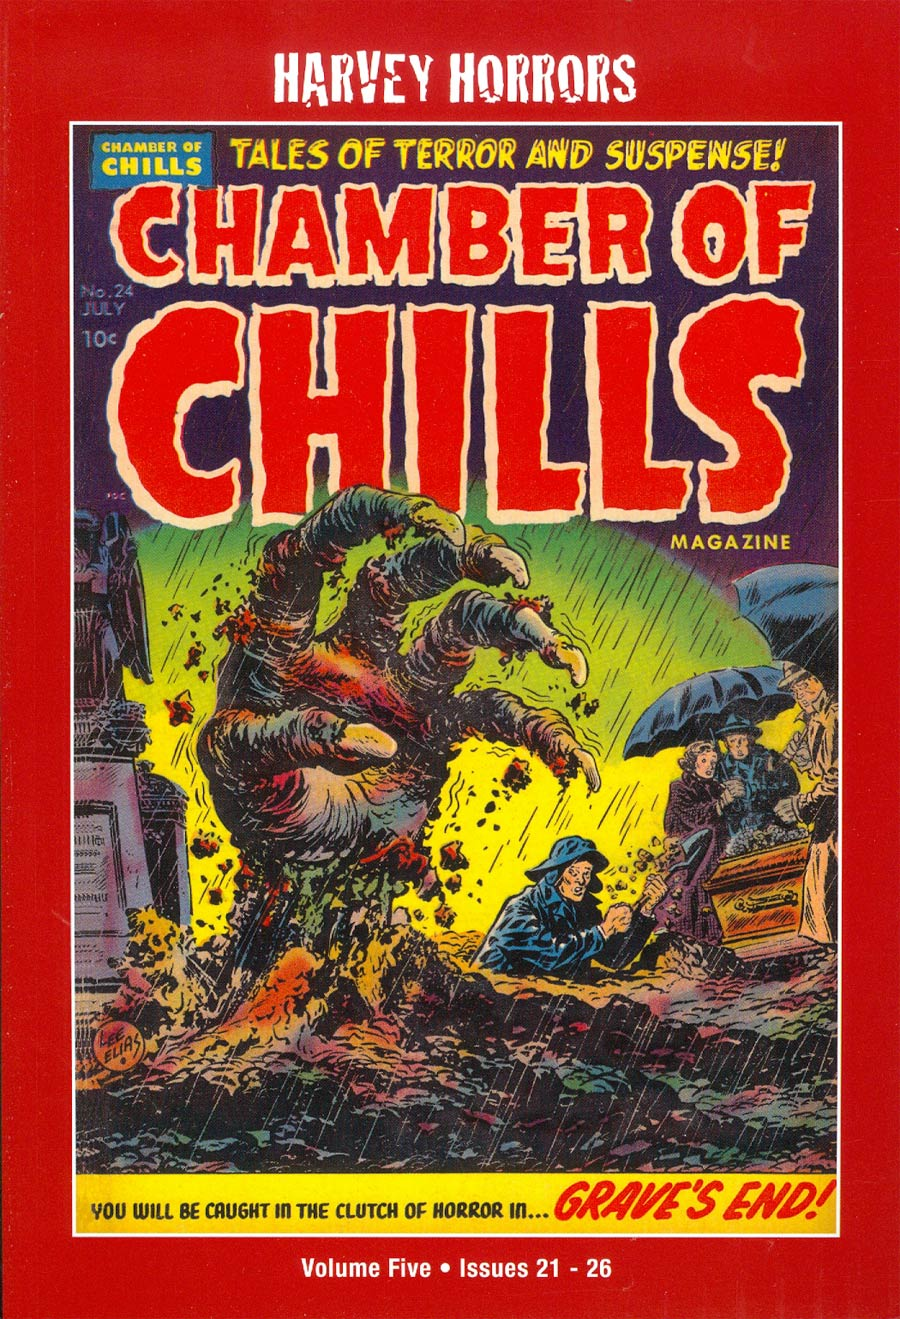 Harvey Horrors Collected Works Chamber Of Chills Softie Vol 5 TP